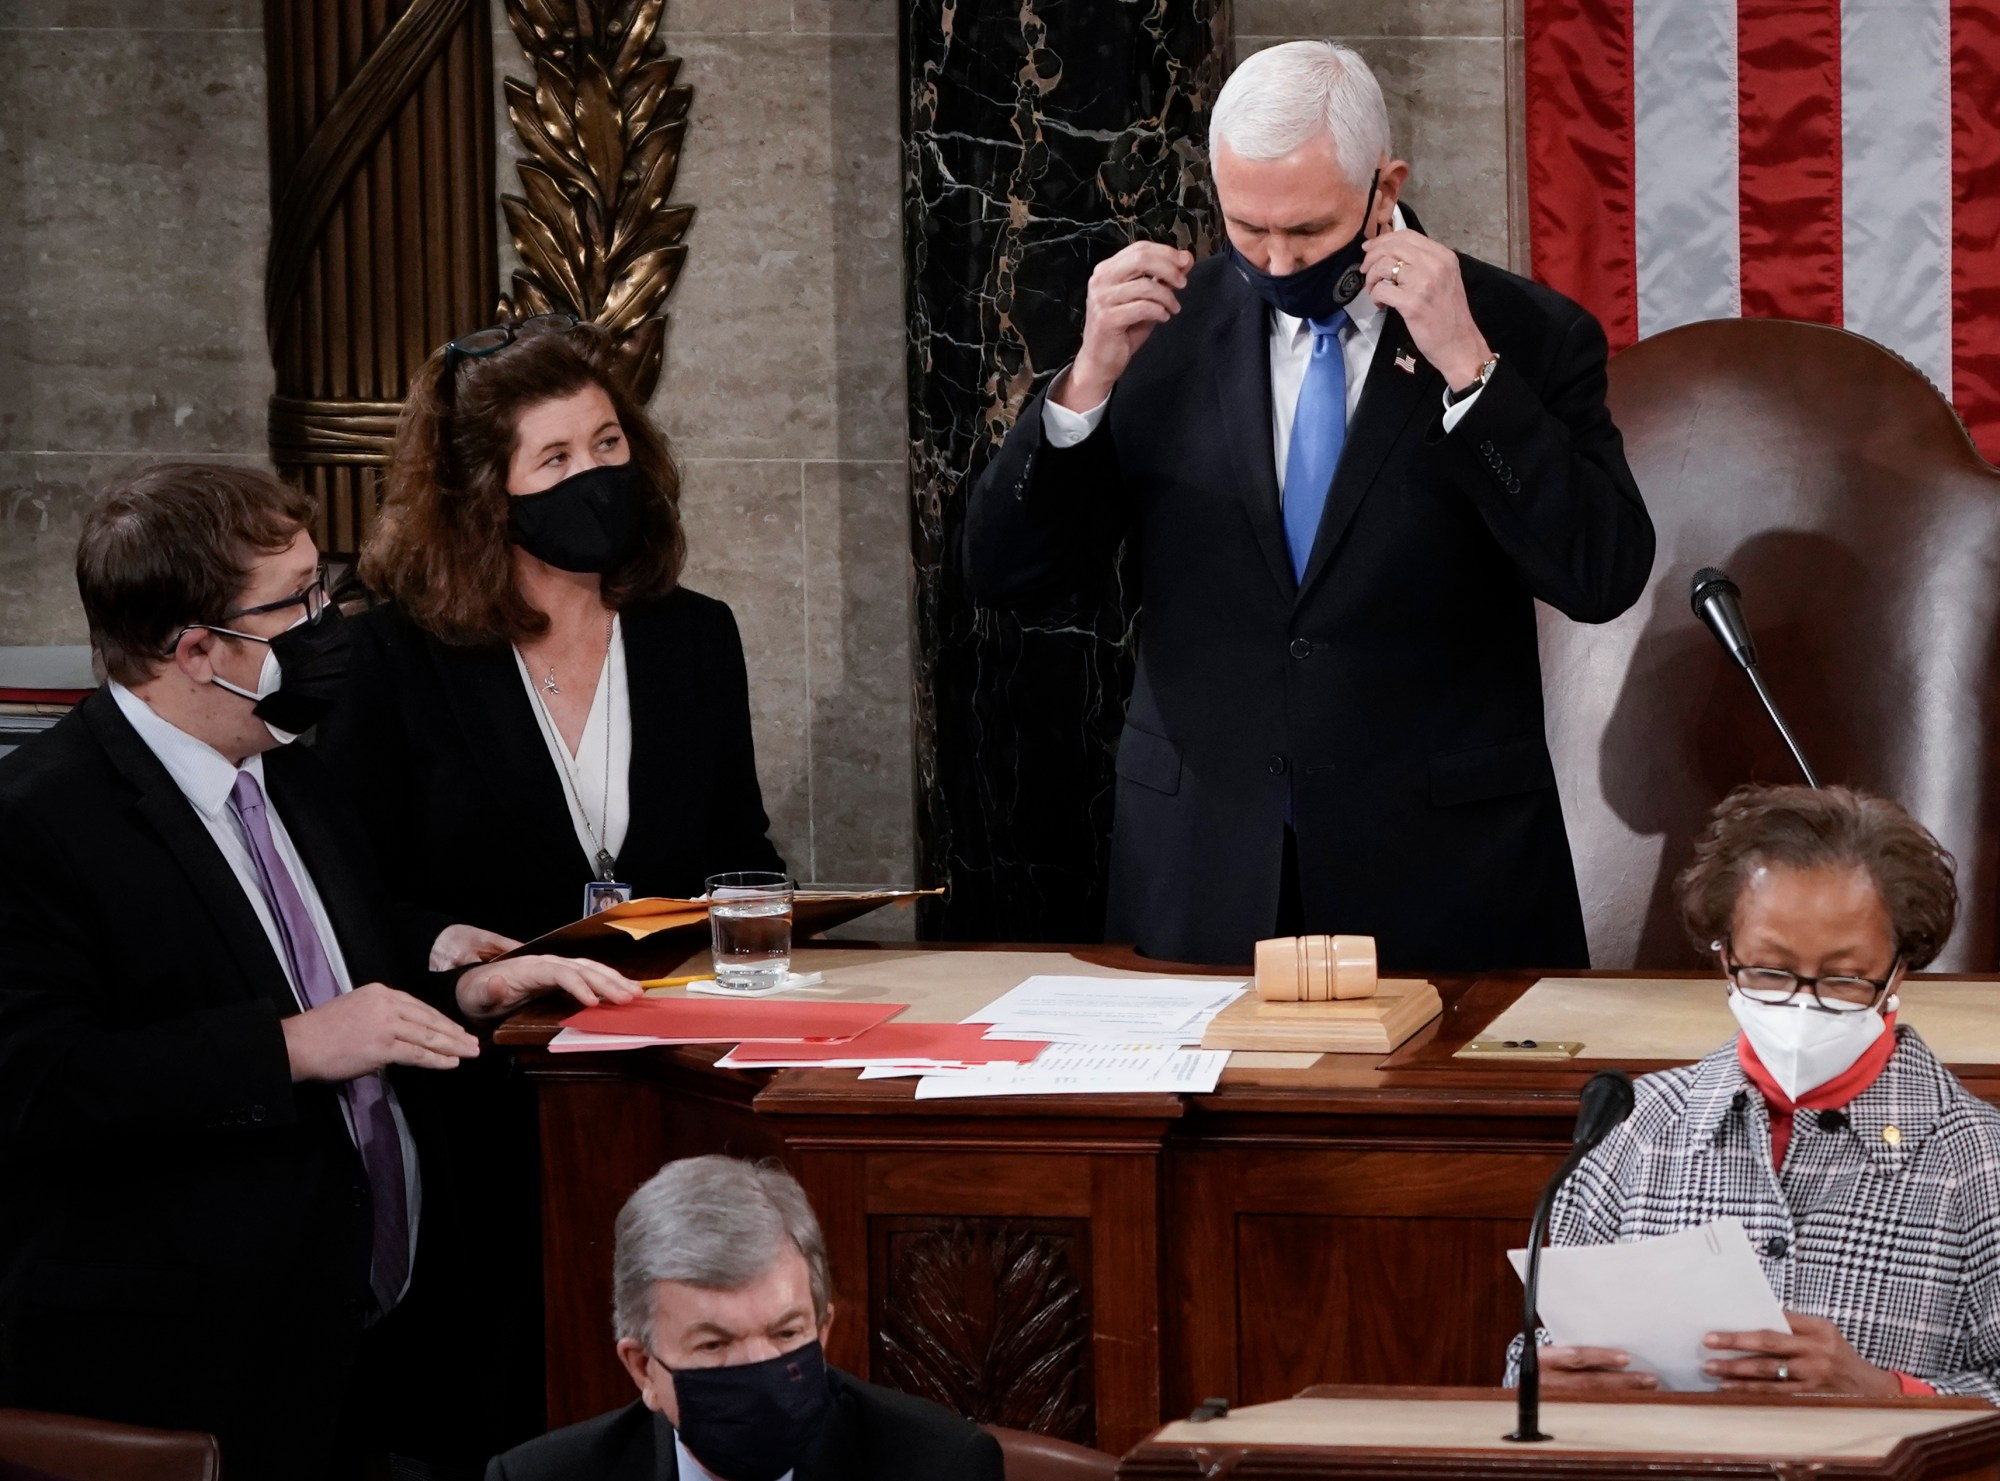 In this Jan. 6, 2021, photo, Senate Parliamentarian Elizabeth MacDonough, left, works beside Vice President Mike Pence during the certification of Electoral College ballots in the presidential election, in the House chamber at the Capitol in Washington. (AP Photo/J. Scott Applewhite)